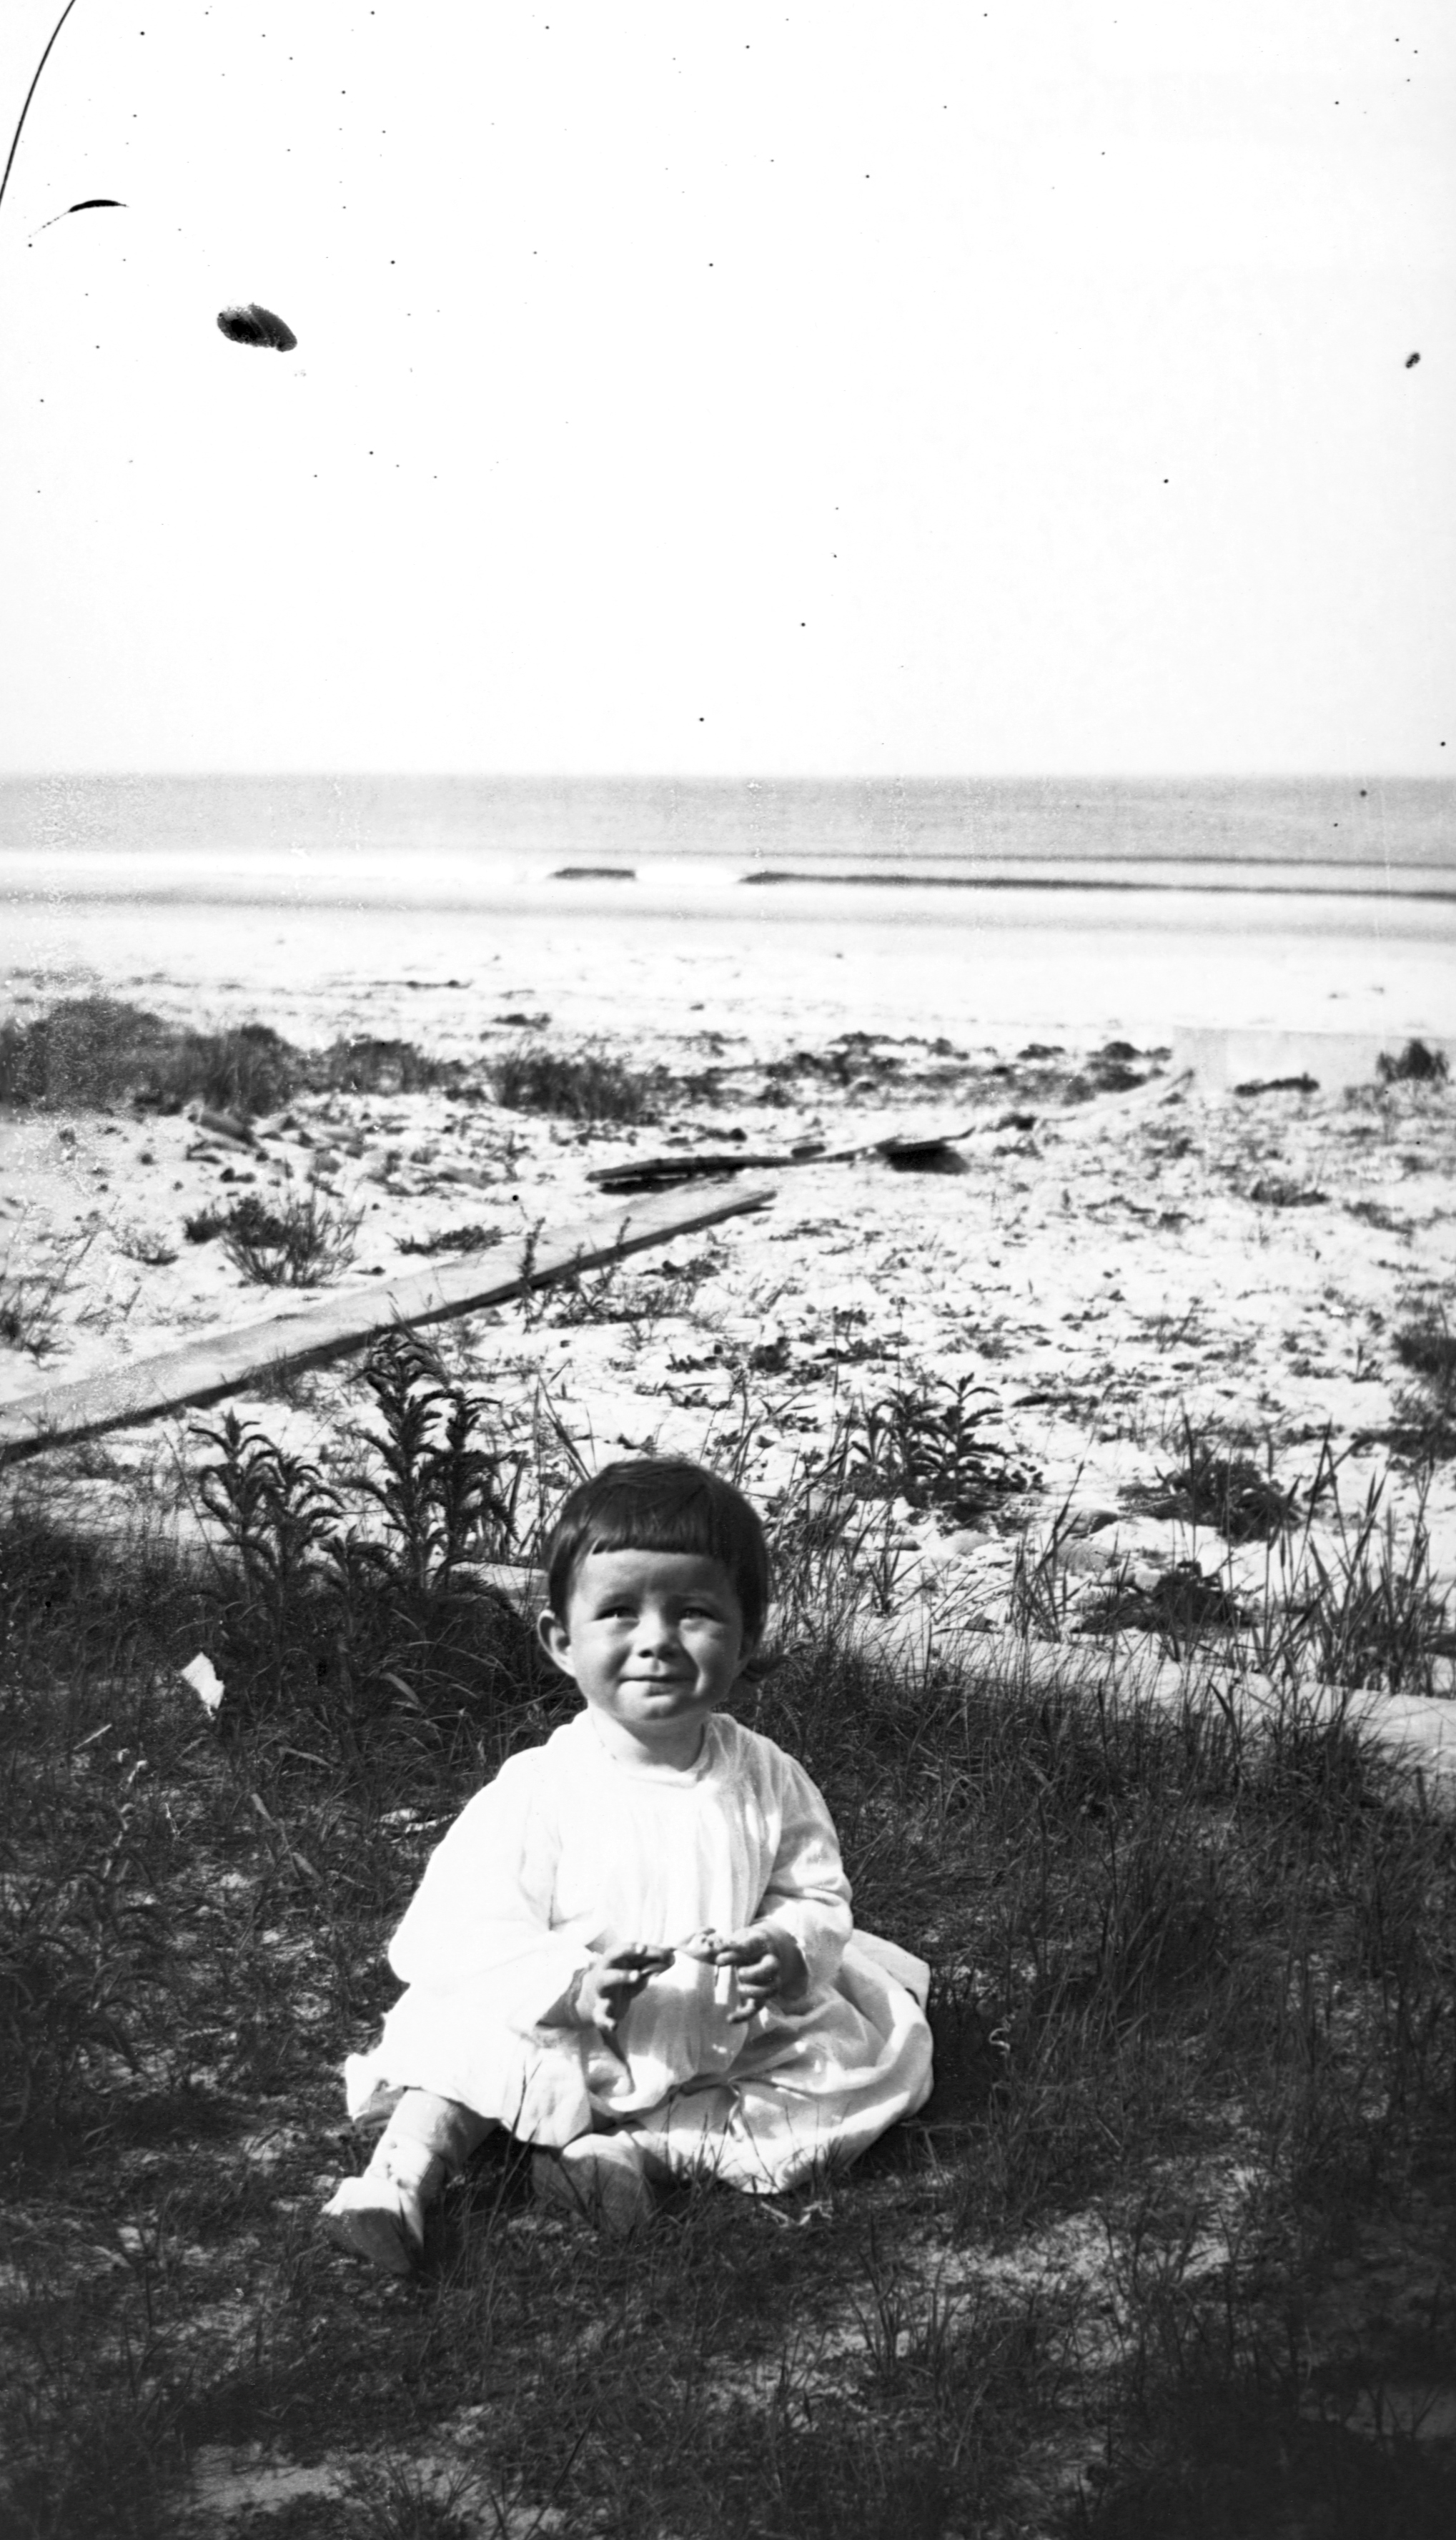 <div class='meta'><div class='origin-logo' data-origin='none'></div><span class='caption-text' data-credit='Corbis via Getty Images'>John F. Kennedy, as a baby, sits in the sand at Nantasket Beach, Massachusetts. Circa 1918.</span></div>